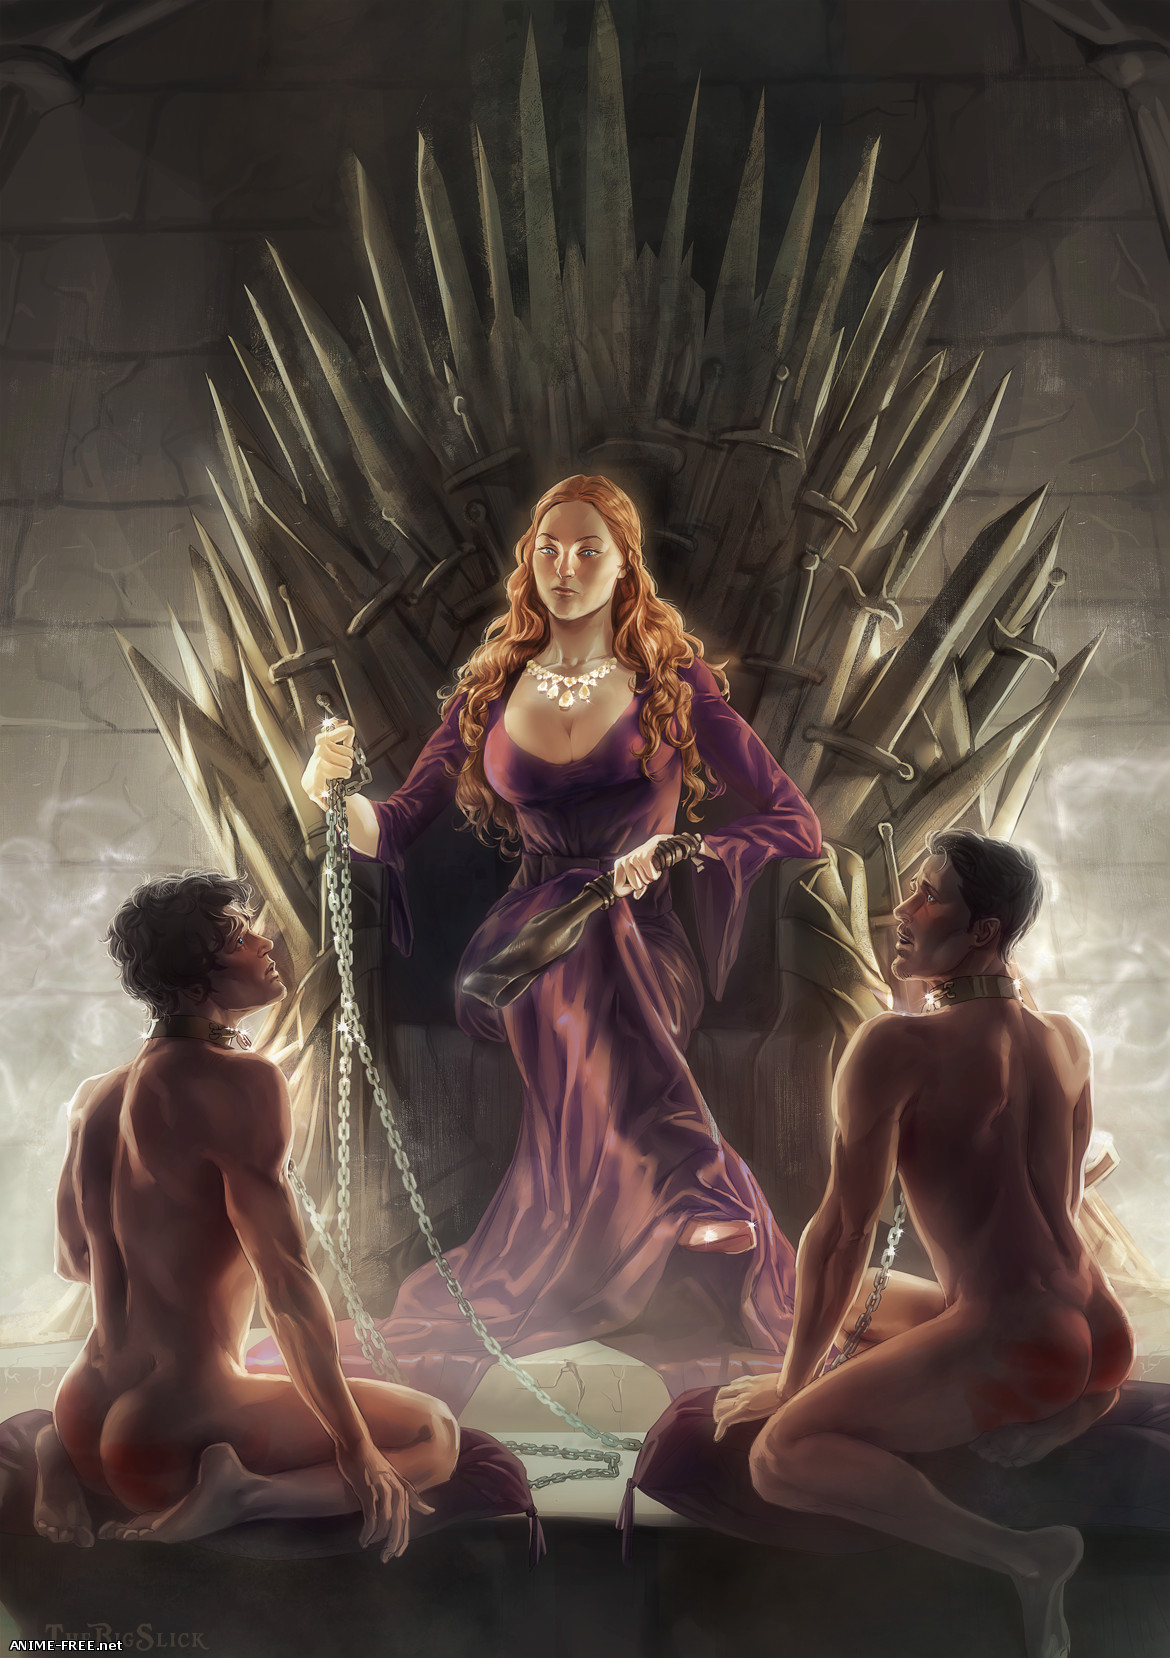 Game of Thrones (Collection) - Сборник арта [Ptcen] [JPG,PNG,GIF] Hentai ART